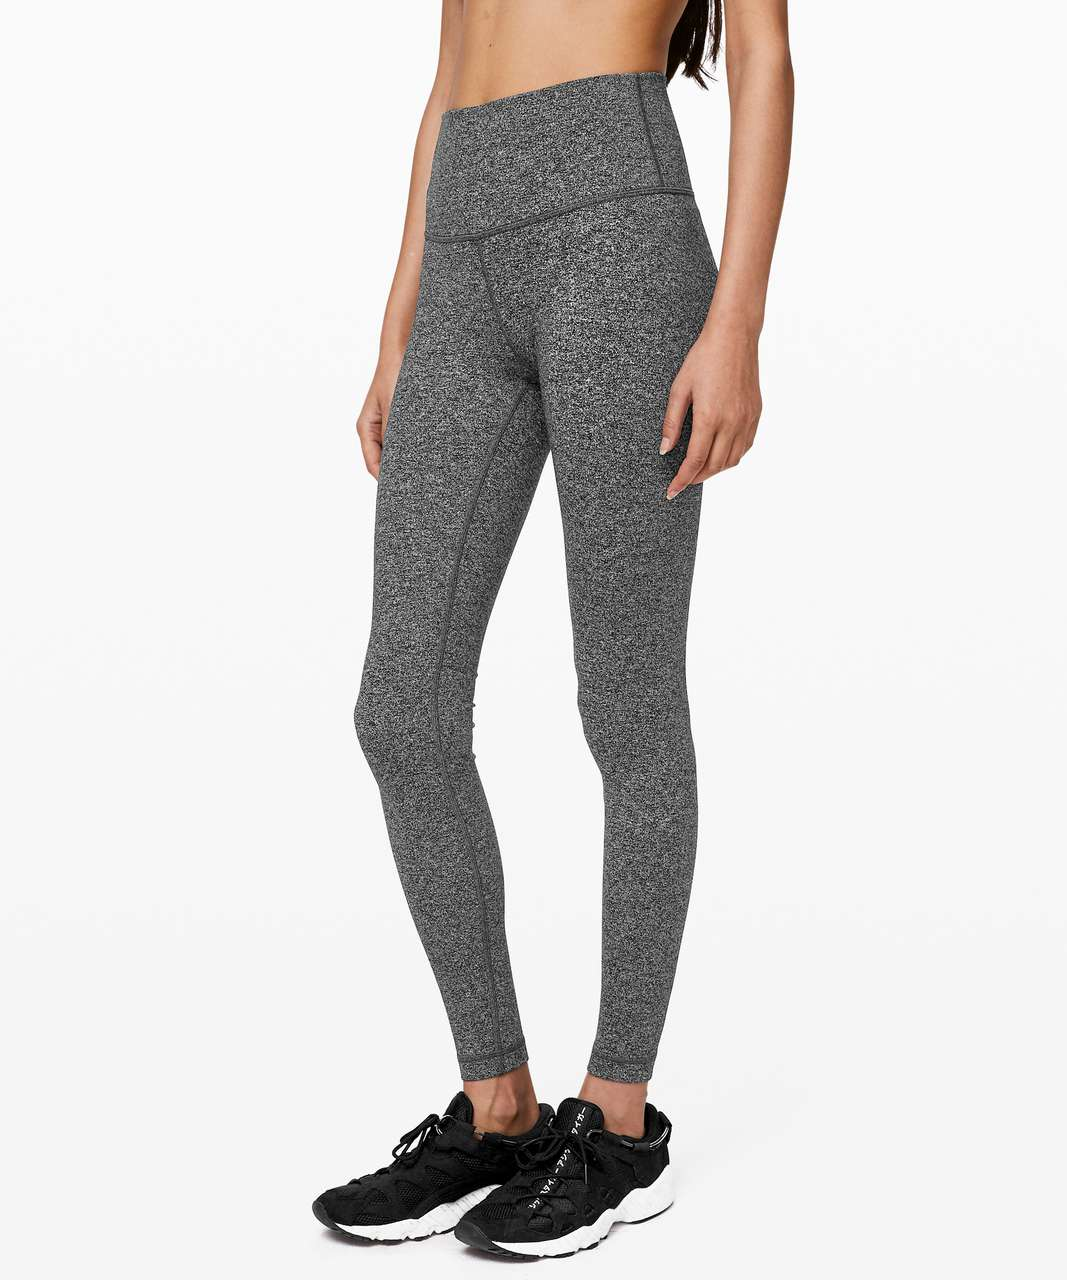 "Lululemon Wunder Under High-Rise Tight 28"" - Heathered Black"